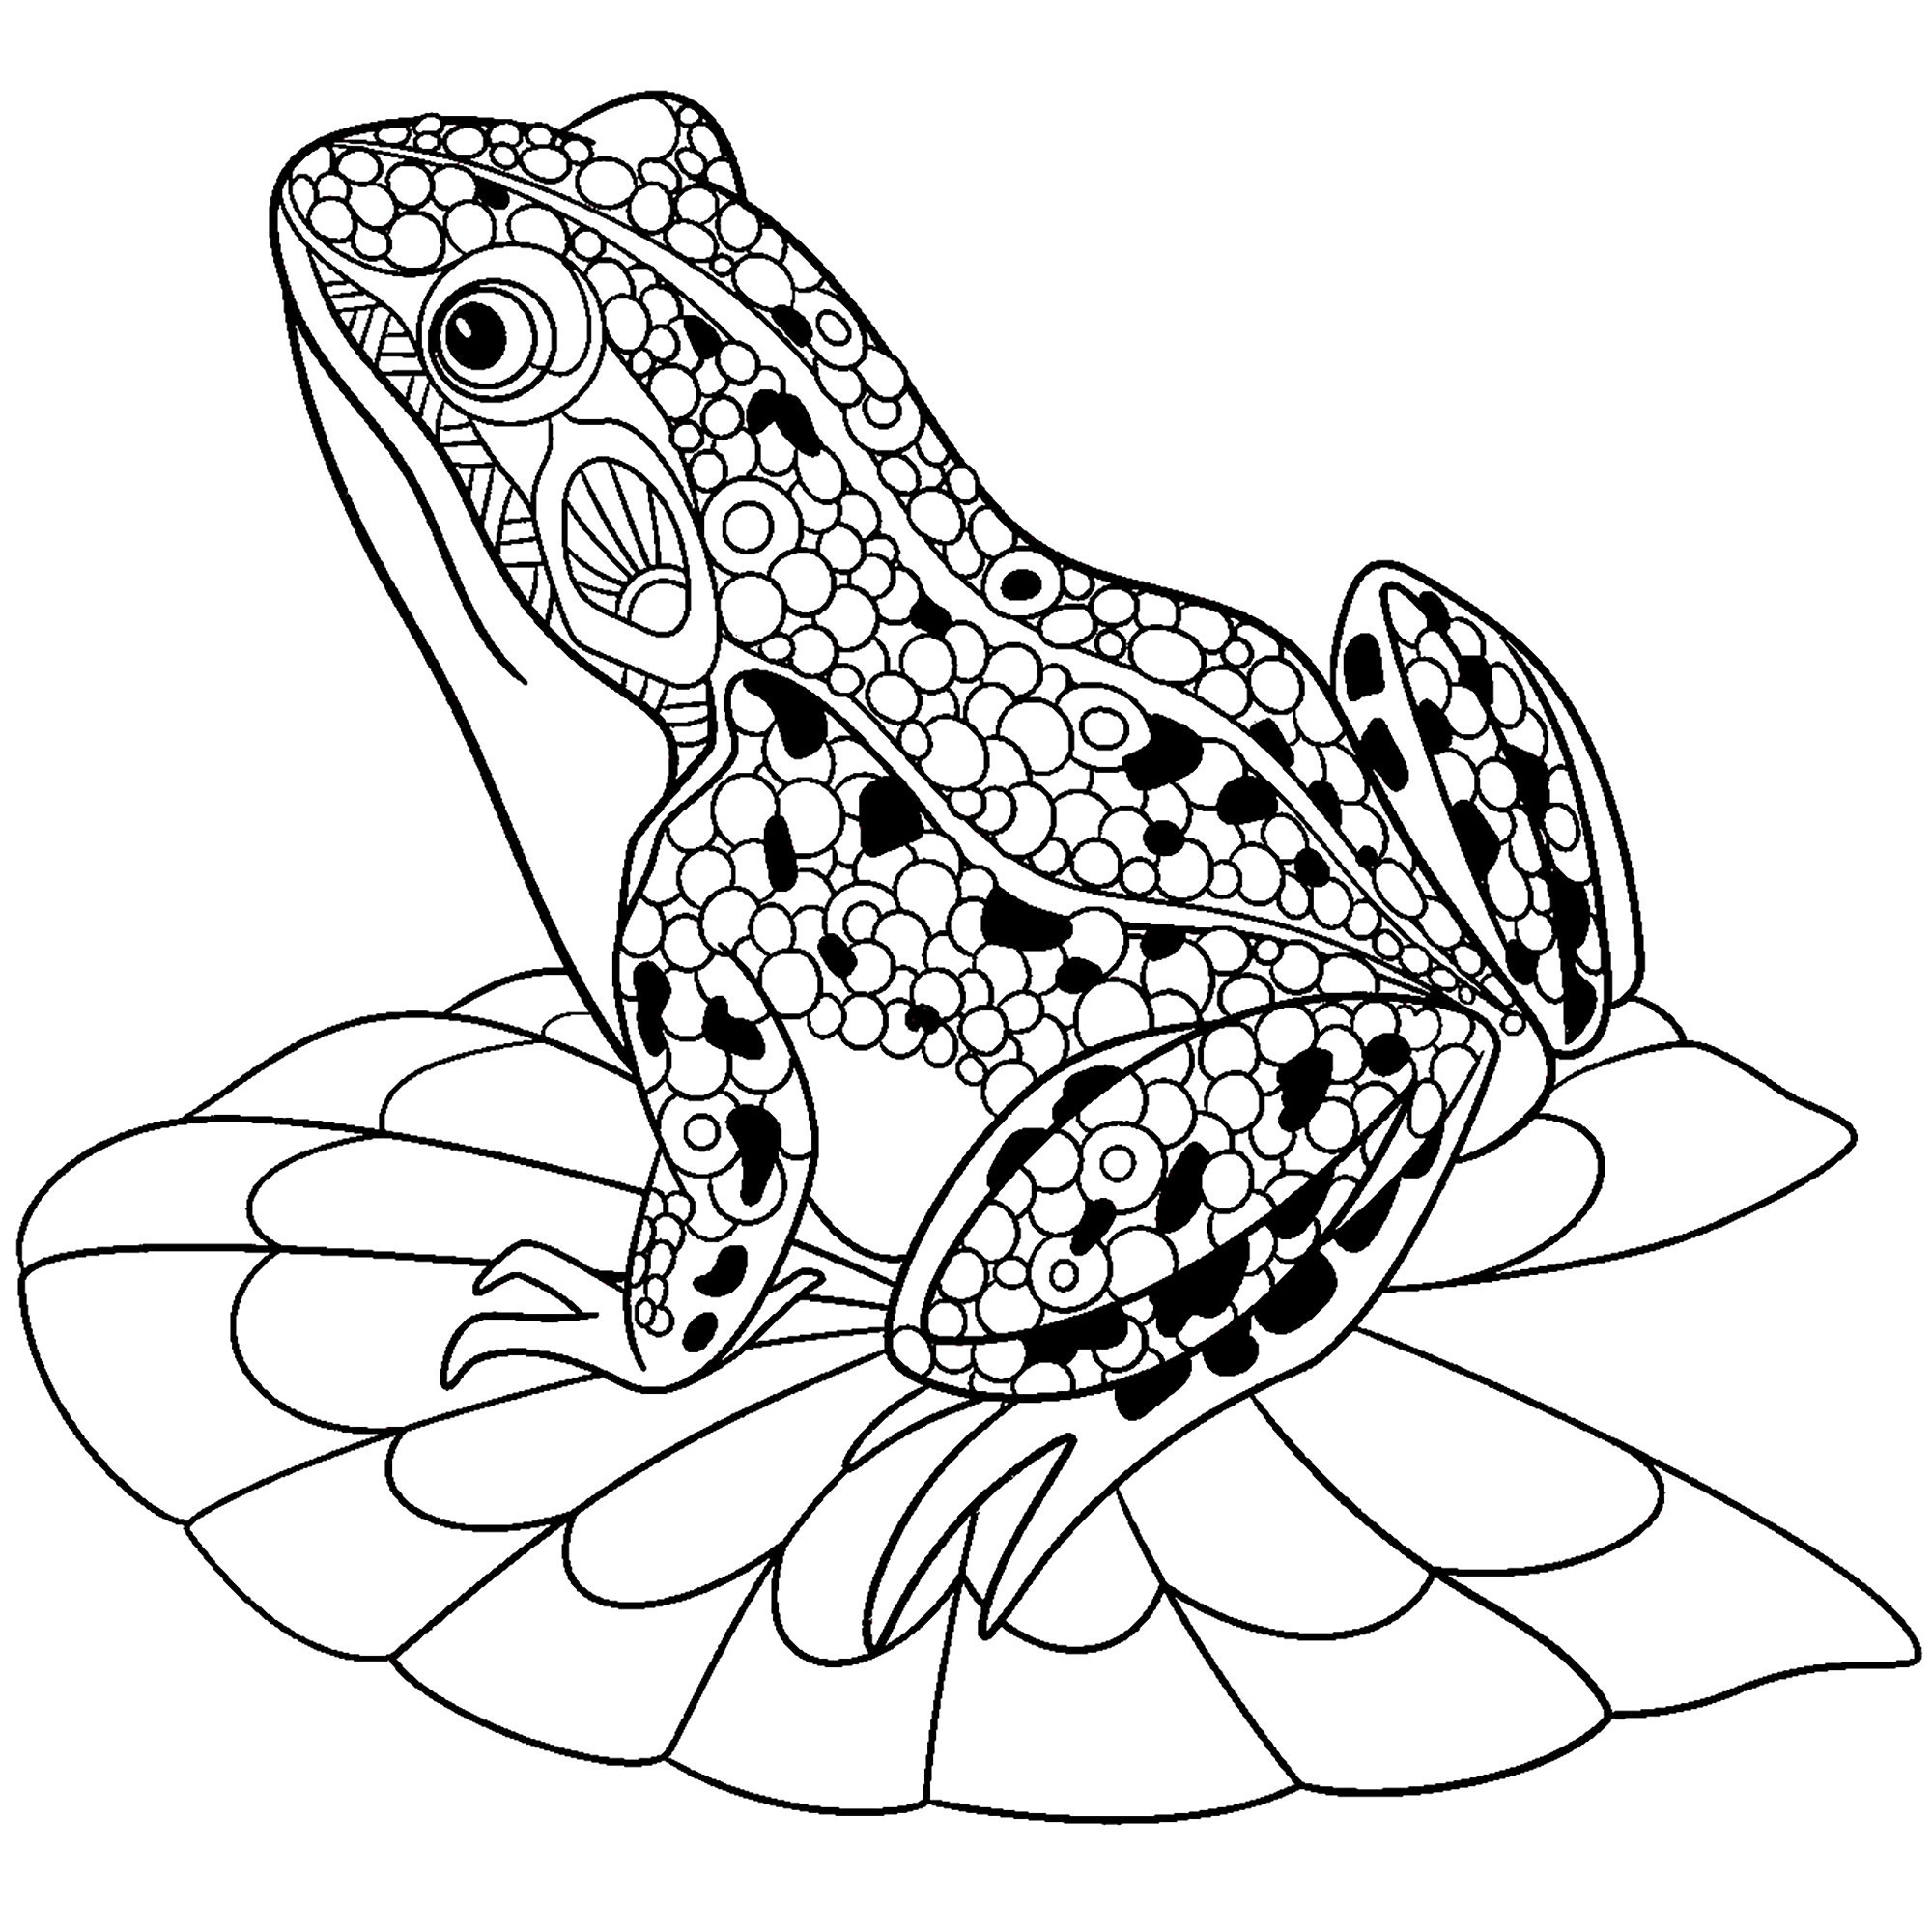 Coloring Page Pictures Of Frogs